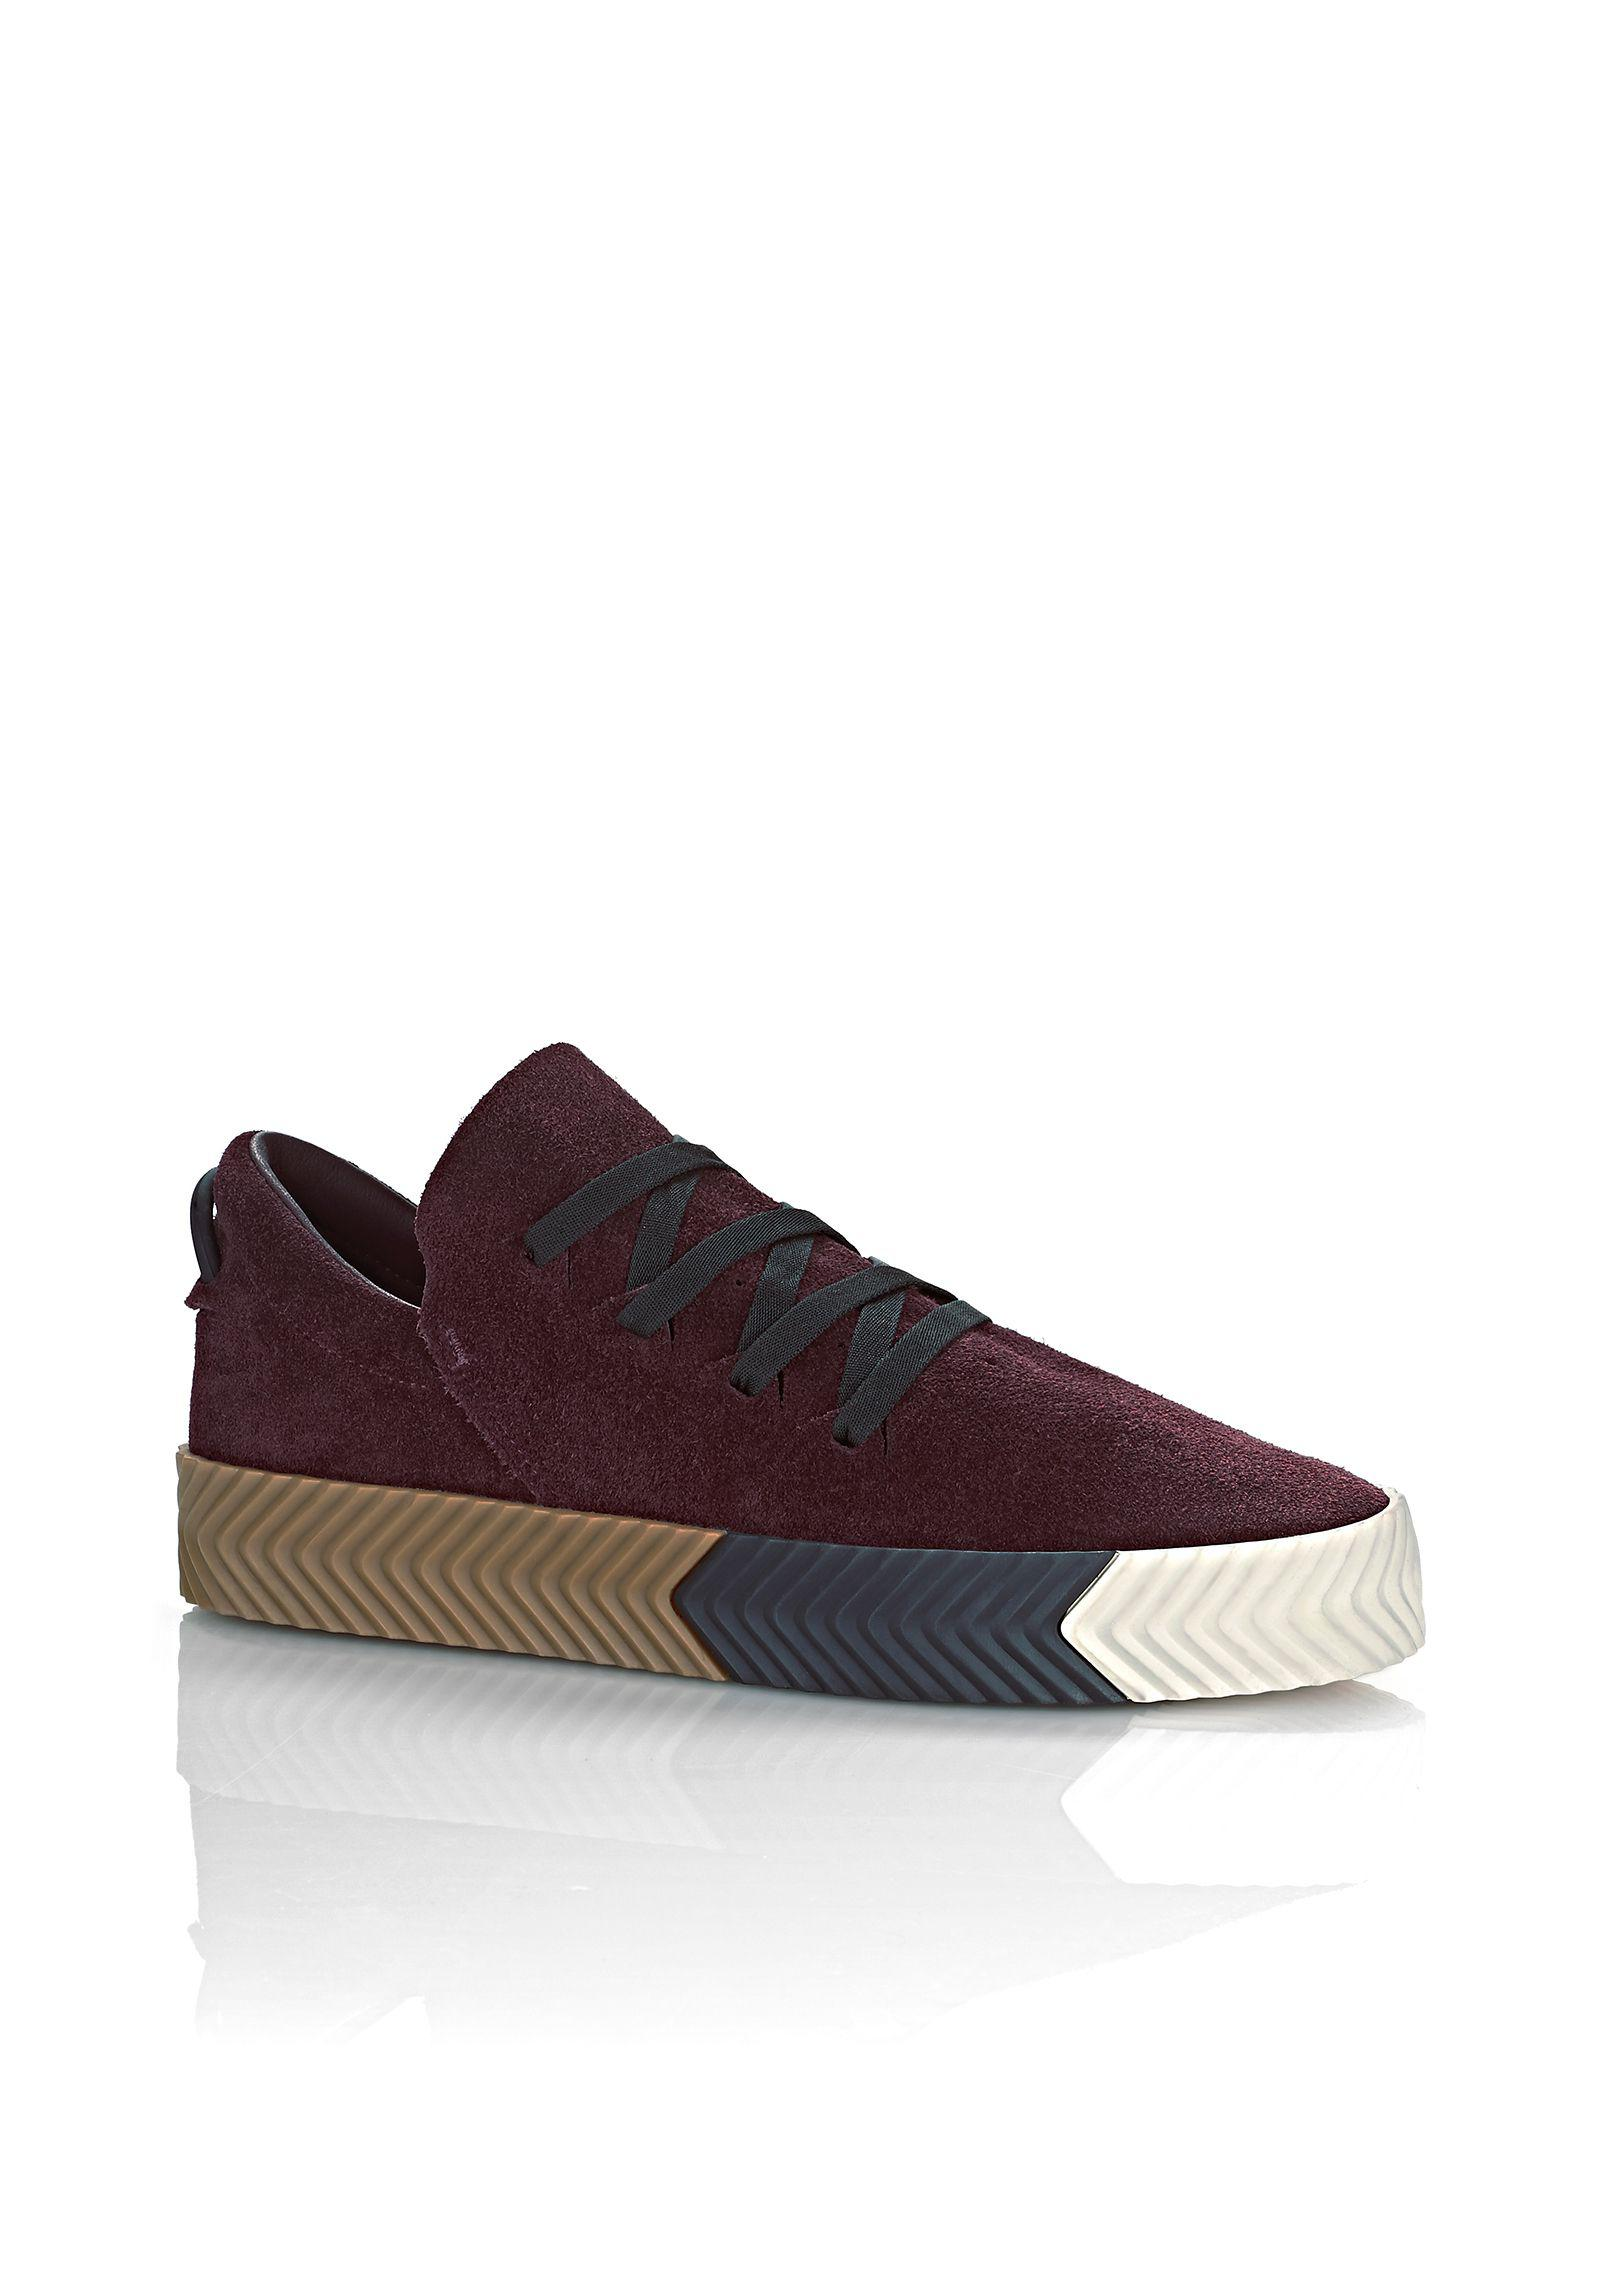 new product a78bd c6342 Lyst - Alexander Wang Adidas Originals By Aw Skate Shoes